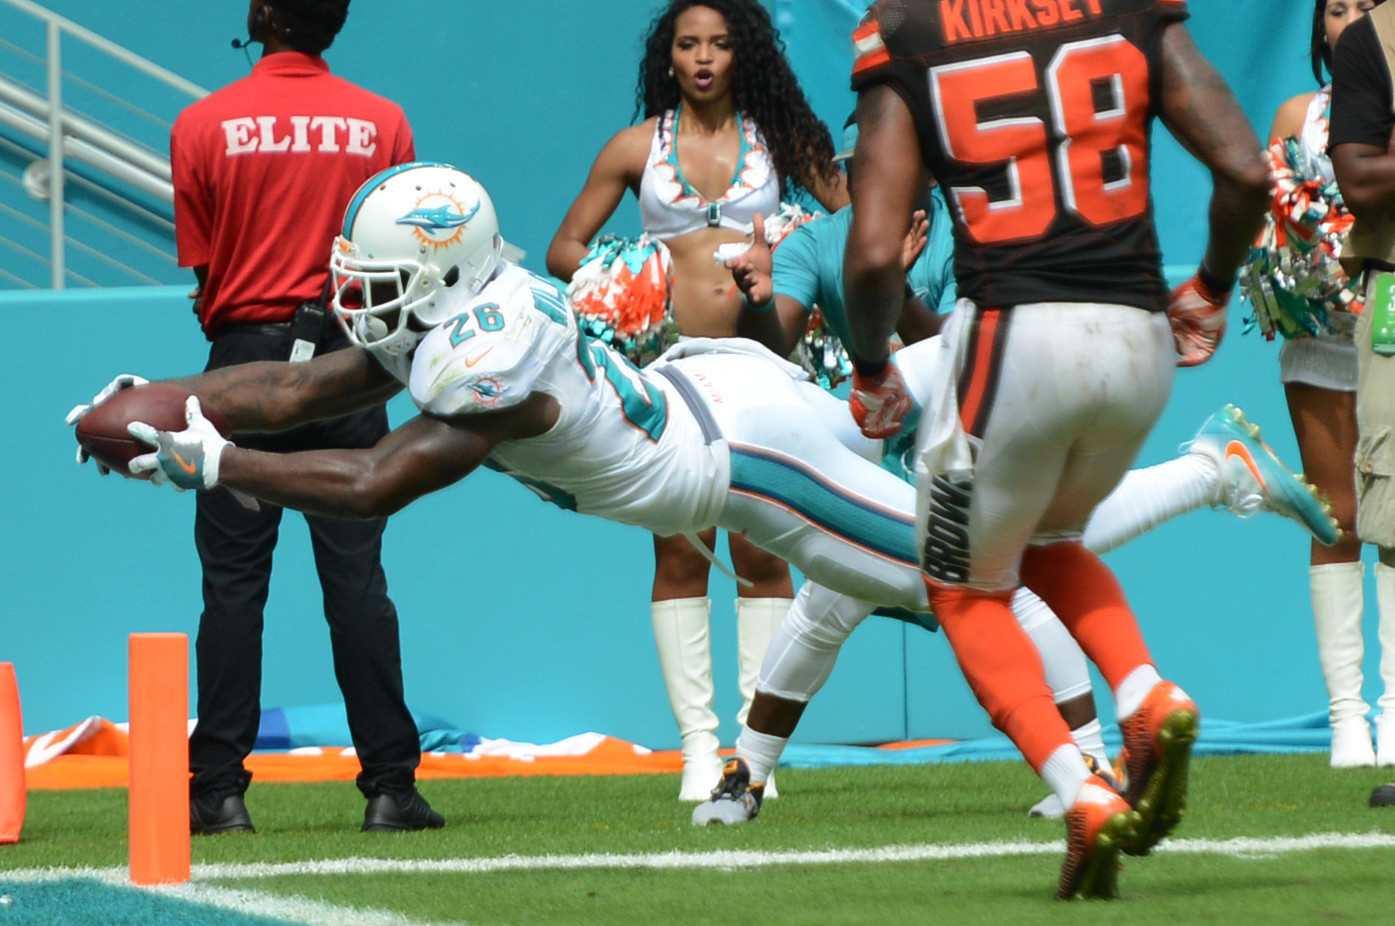 Sfl-omar-kelly-grades-the-dolphins-performance-against-the-browns-20160926